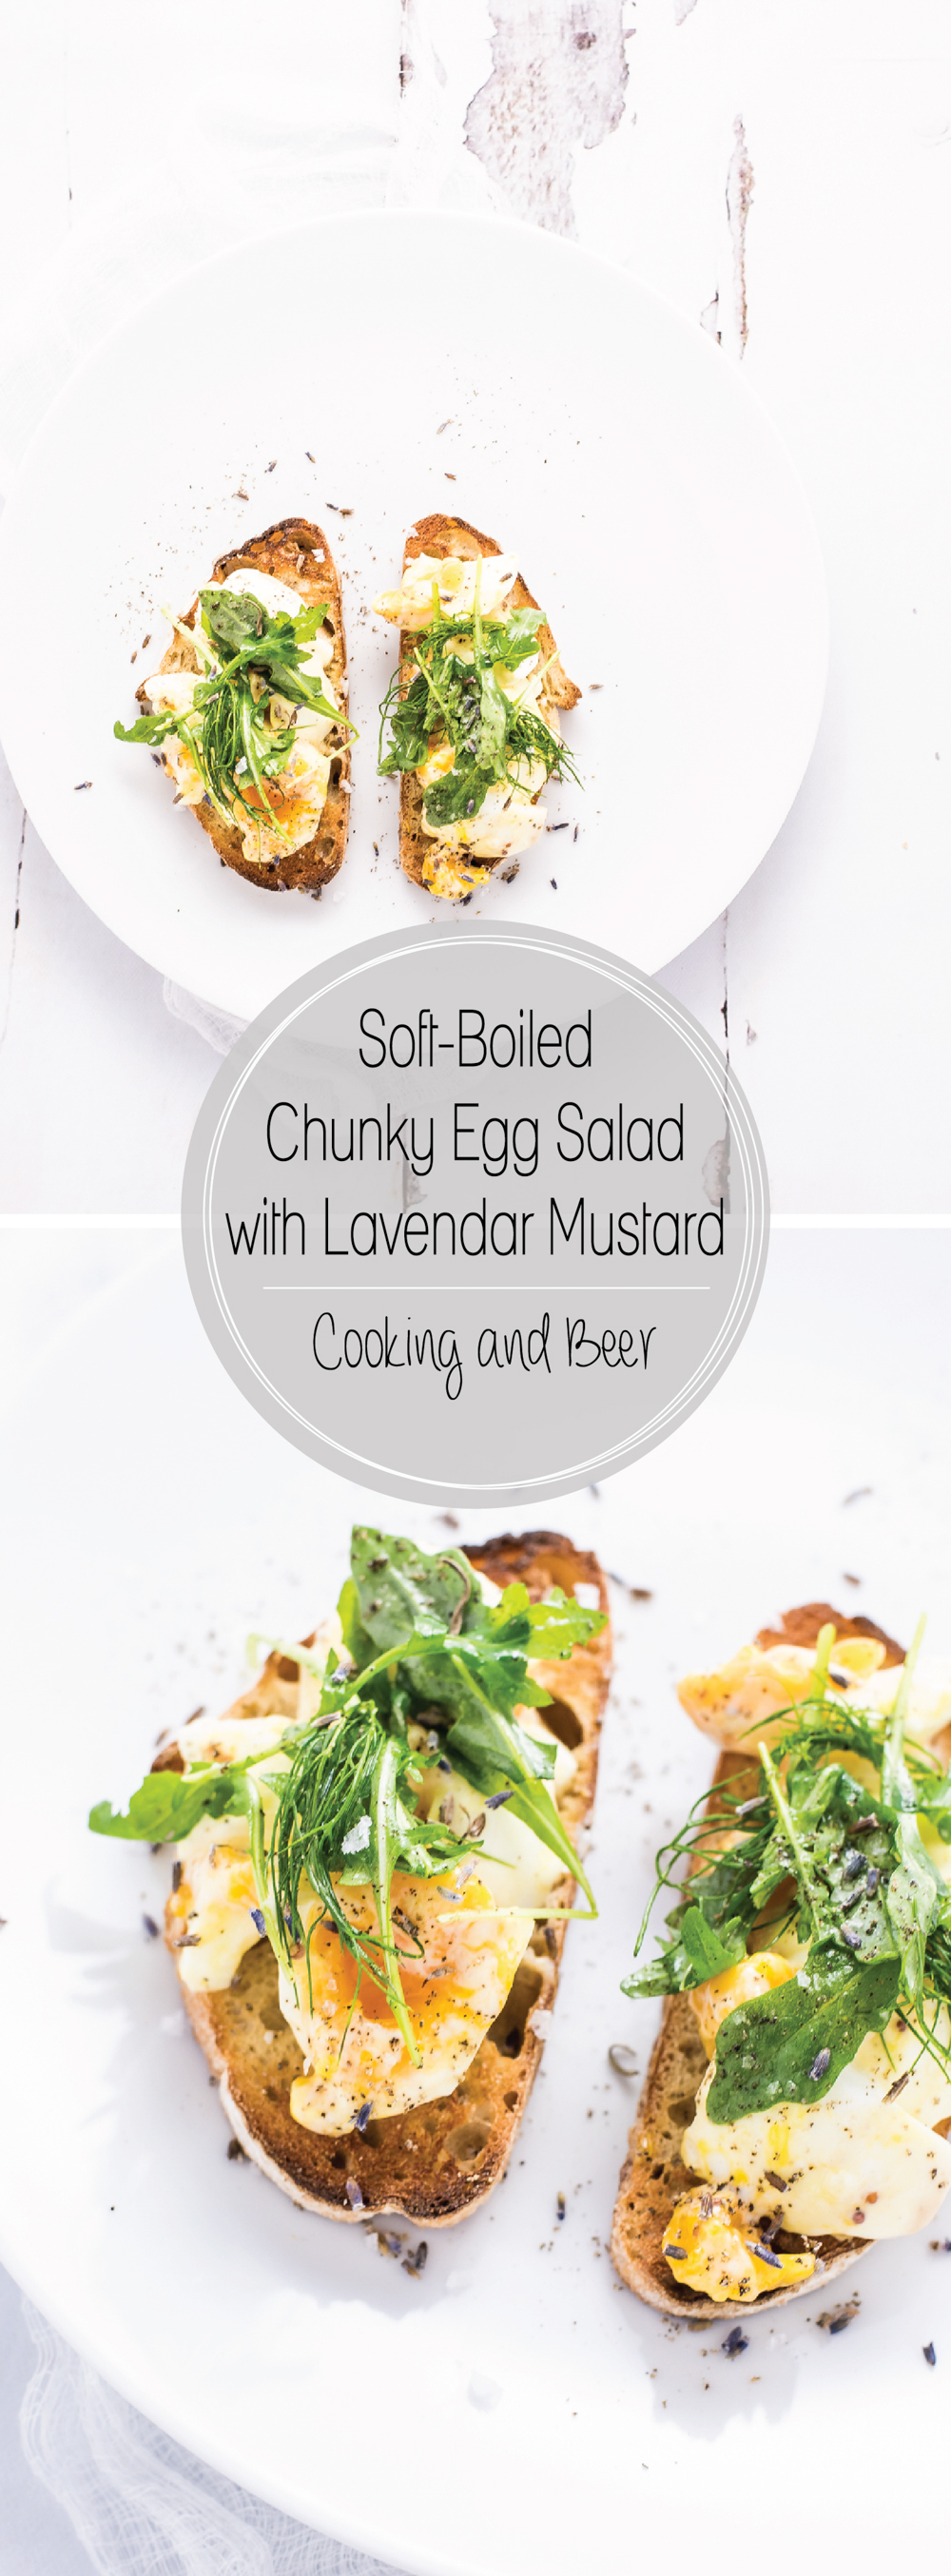 Soft-boiled chunky egg salad with lavender mustard is a fun twist on traditional egg salad, using a mustard mayonnaise and a hint of lavender!